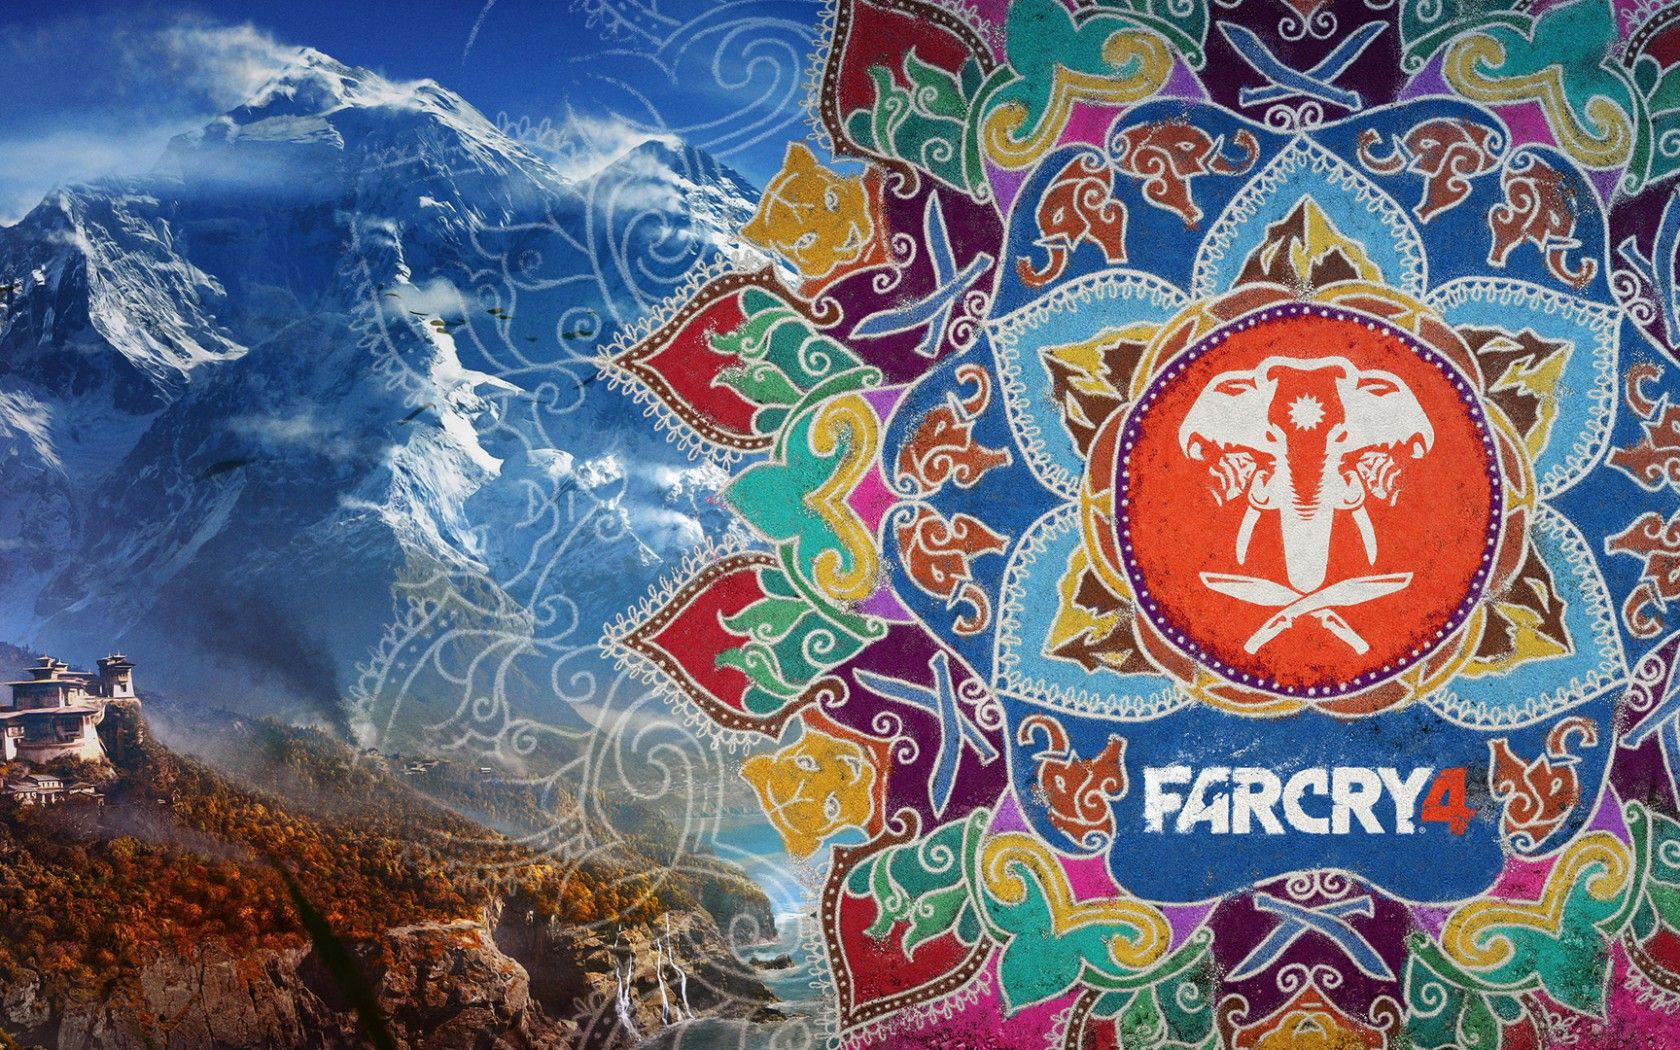 Far Cry 4 Wallpaper Iphone Google Search Far Cry 4 Art